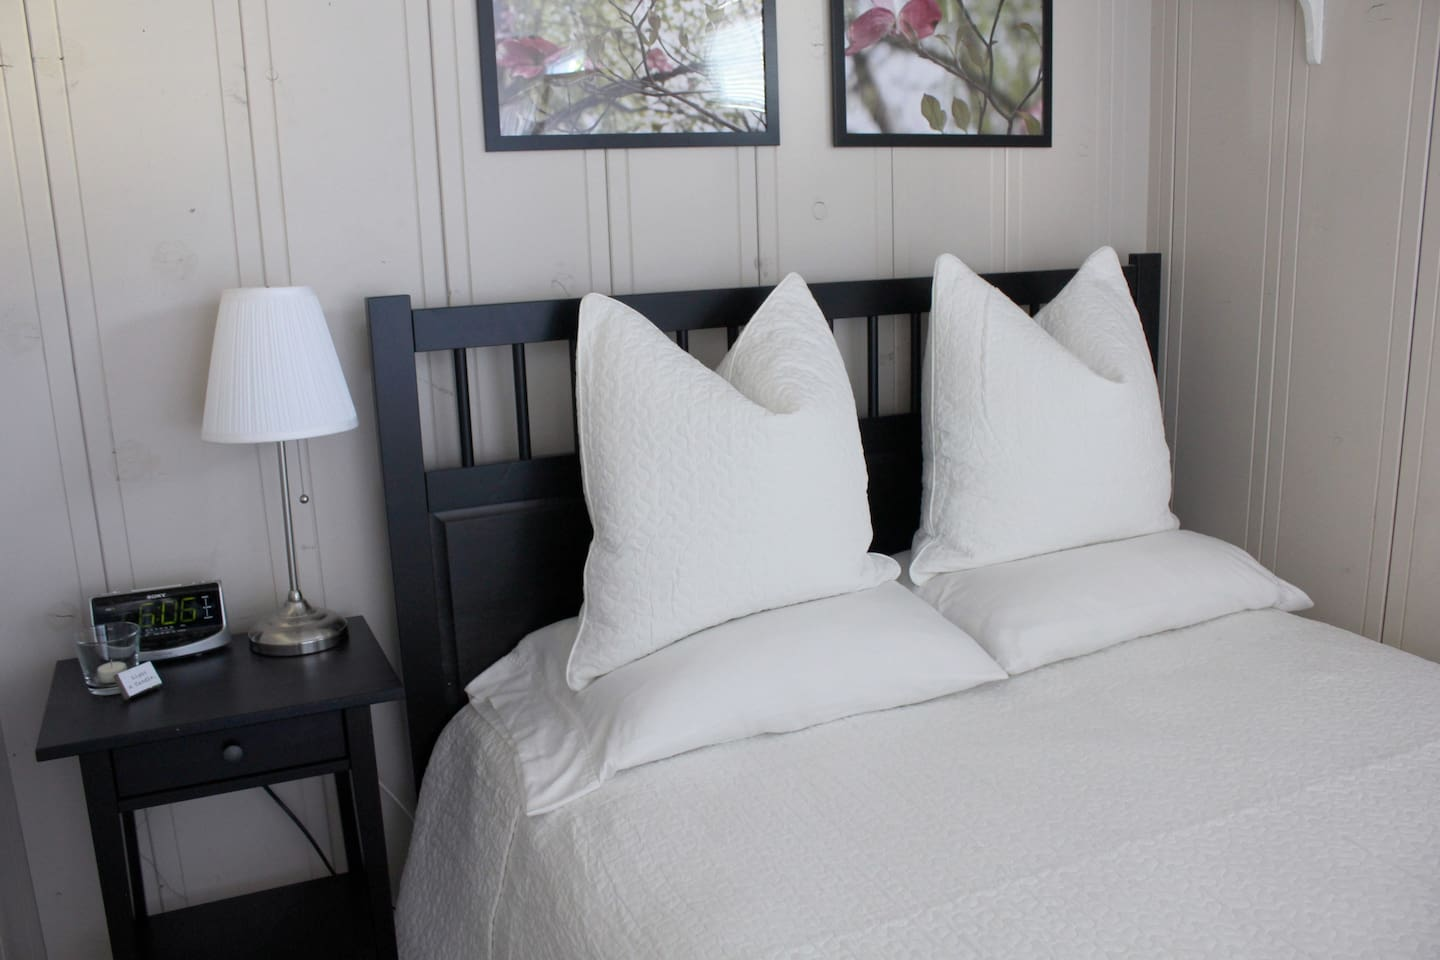 The Cottage | Snuggle up in the queen-size bed w/ fresh, quilted cotton linens.